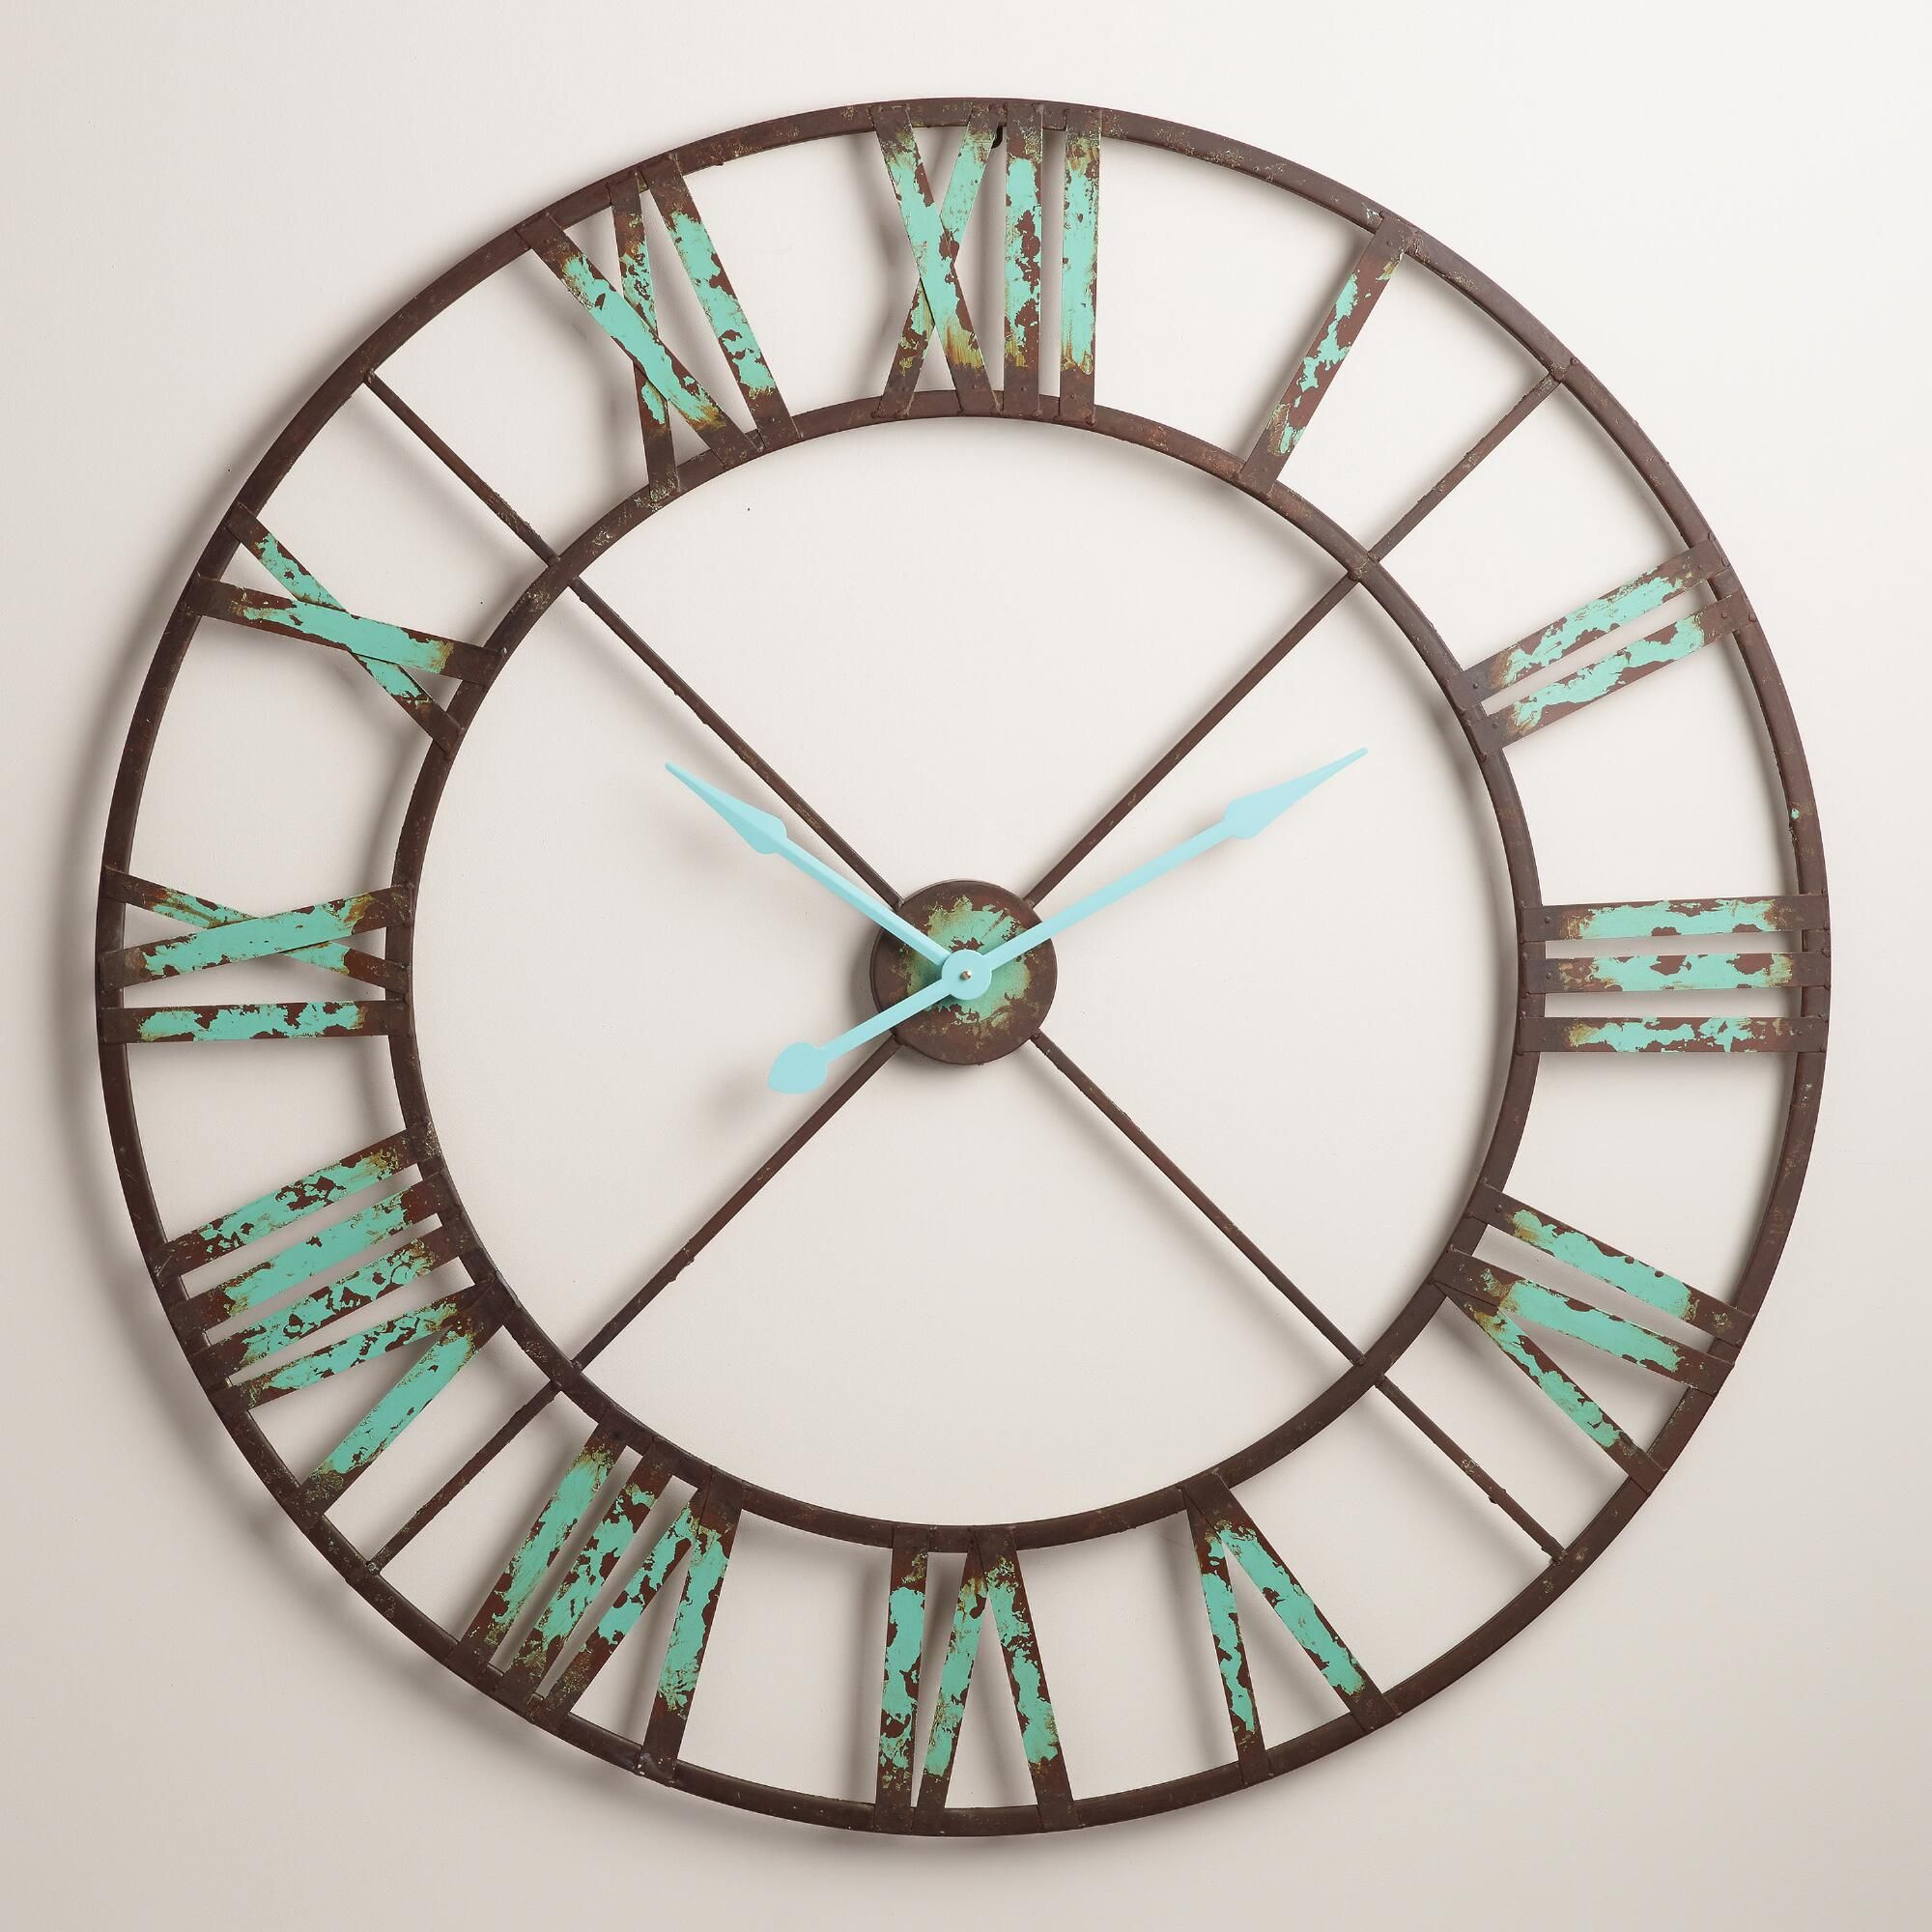 Statement Wall Clocks Industrial Reed Wall Clock Architectural Salvage Clocks